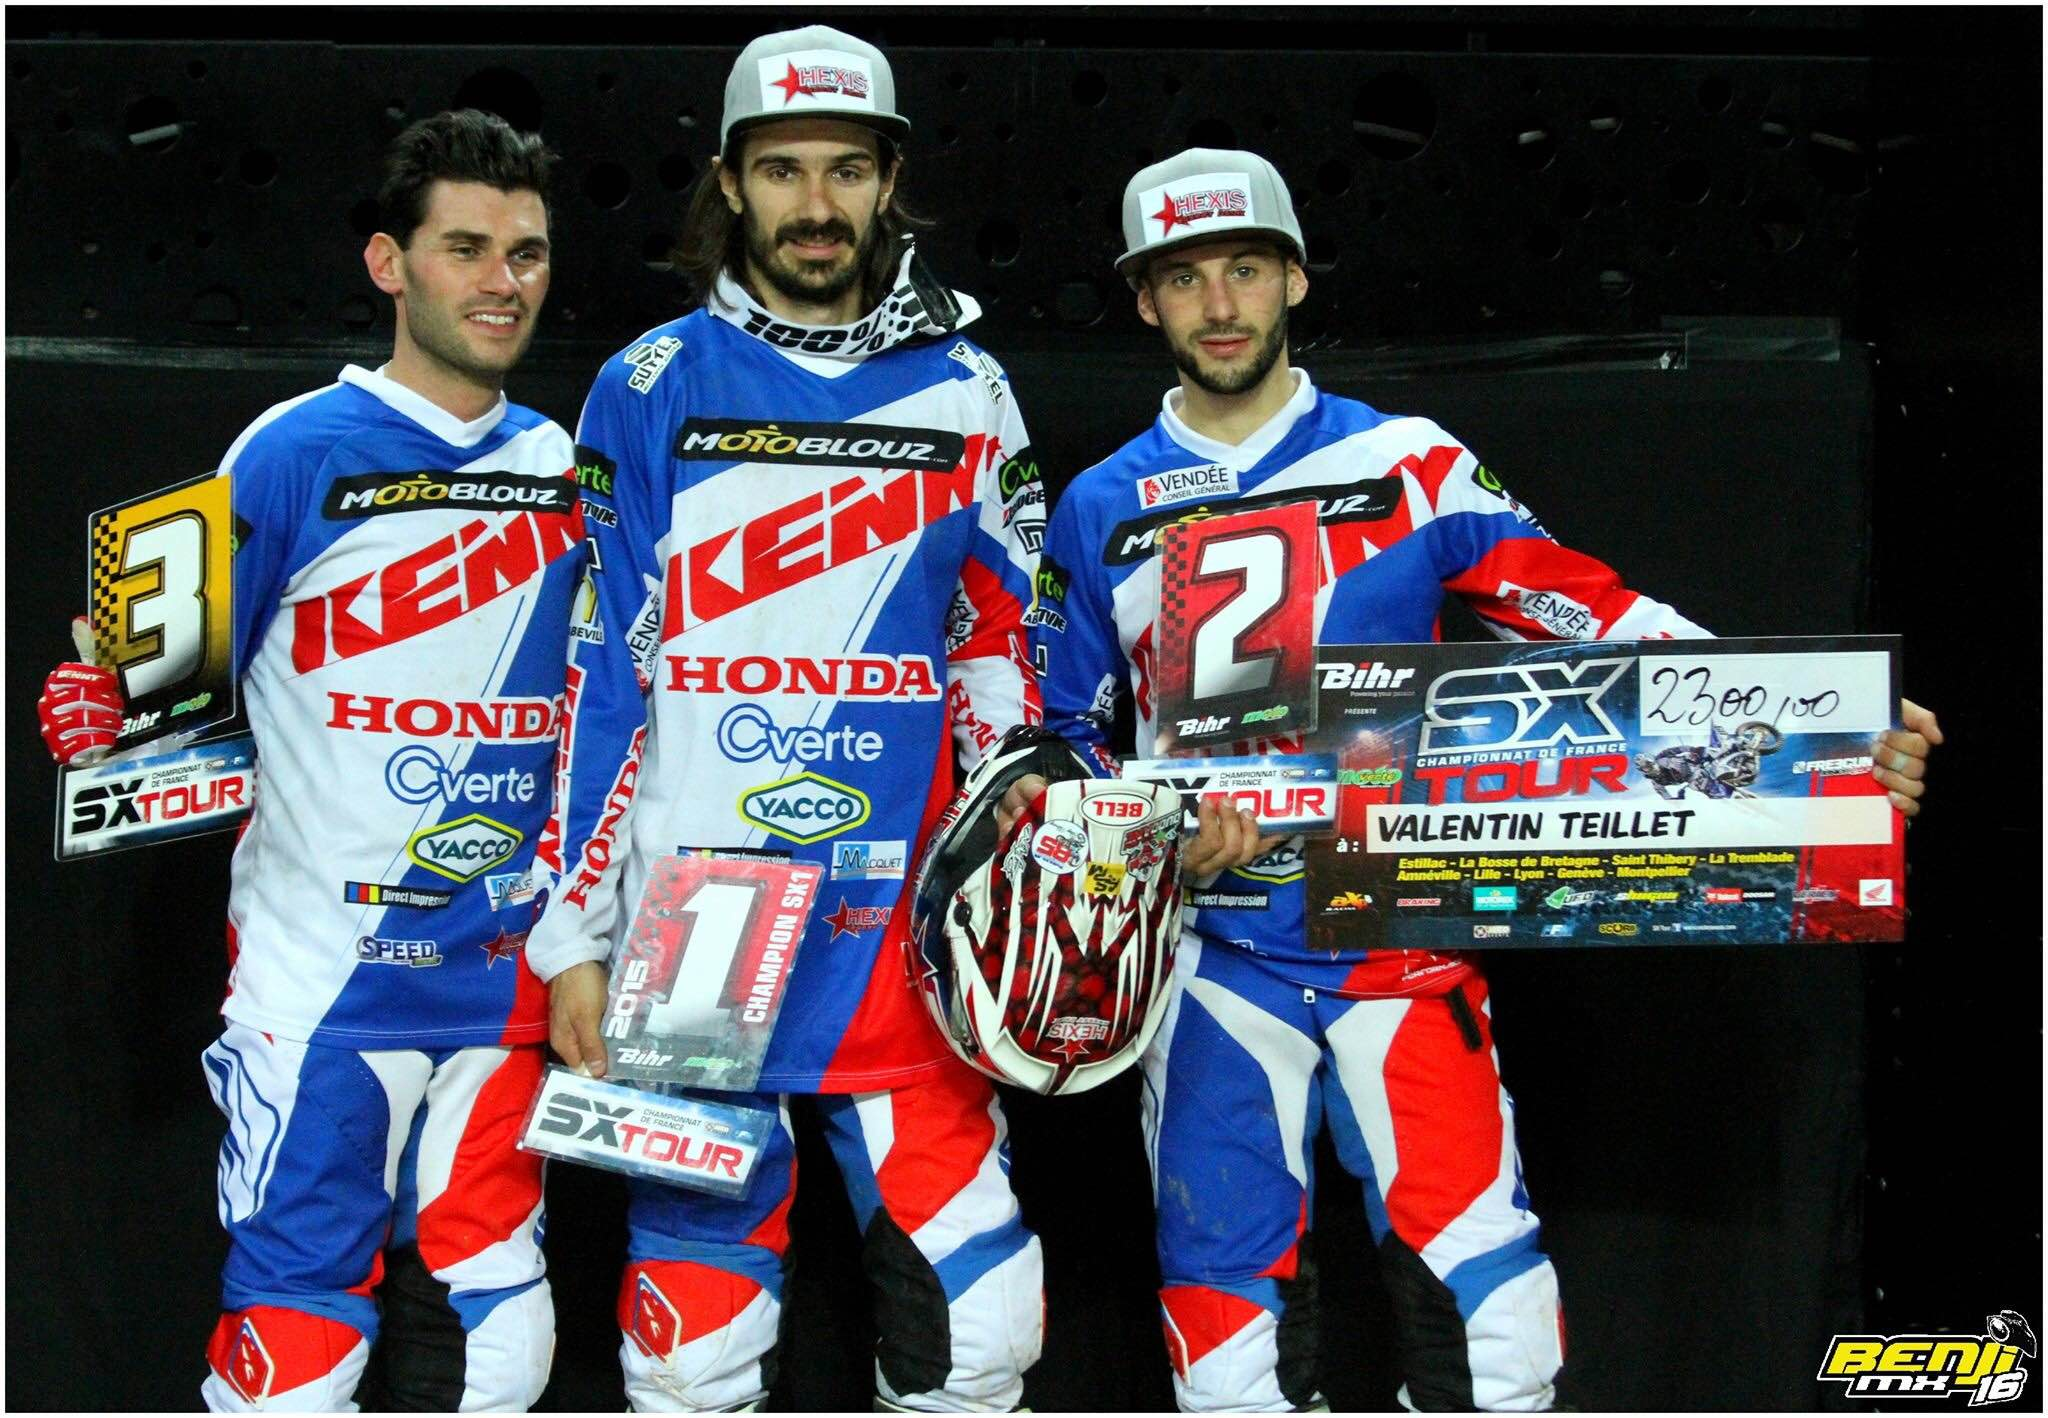 Le Team SR Motoblouz au top !